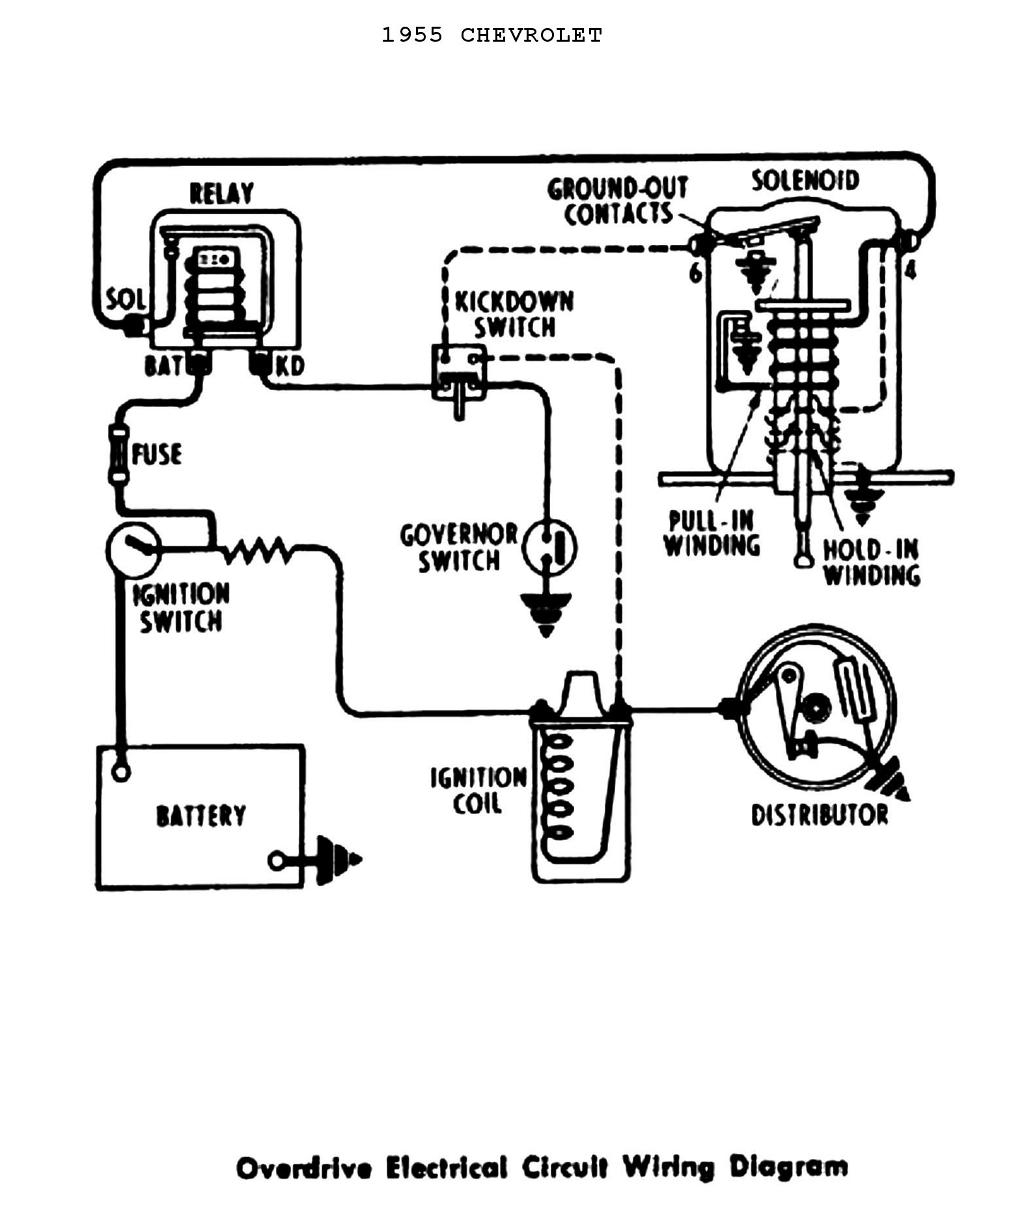 gm 350 vacuum diagram